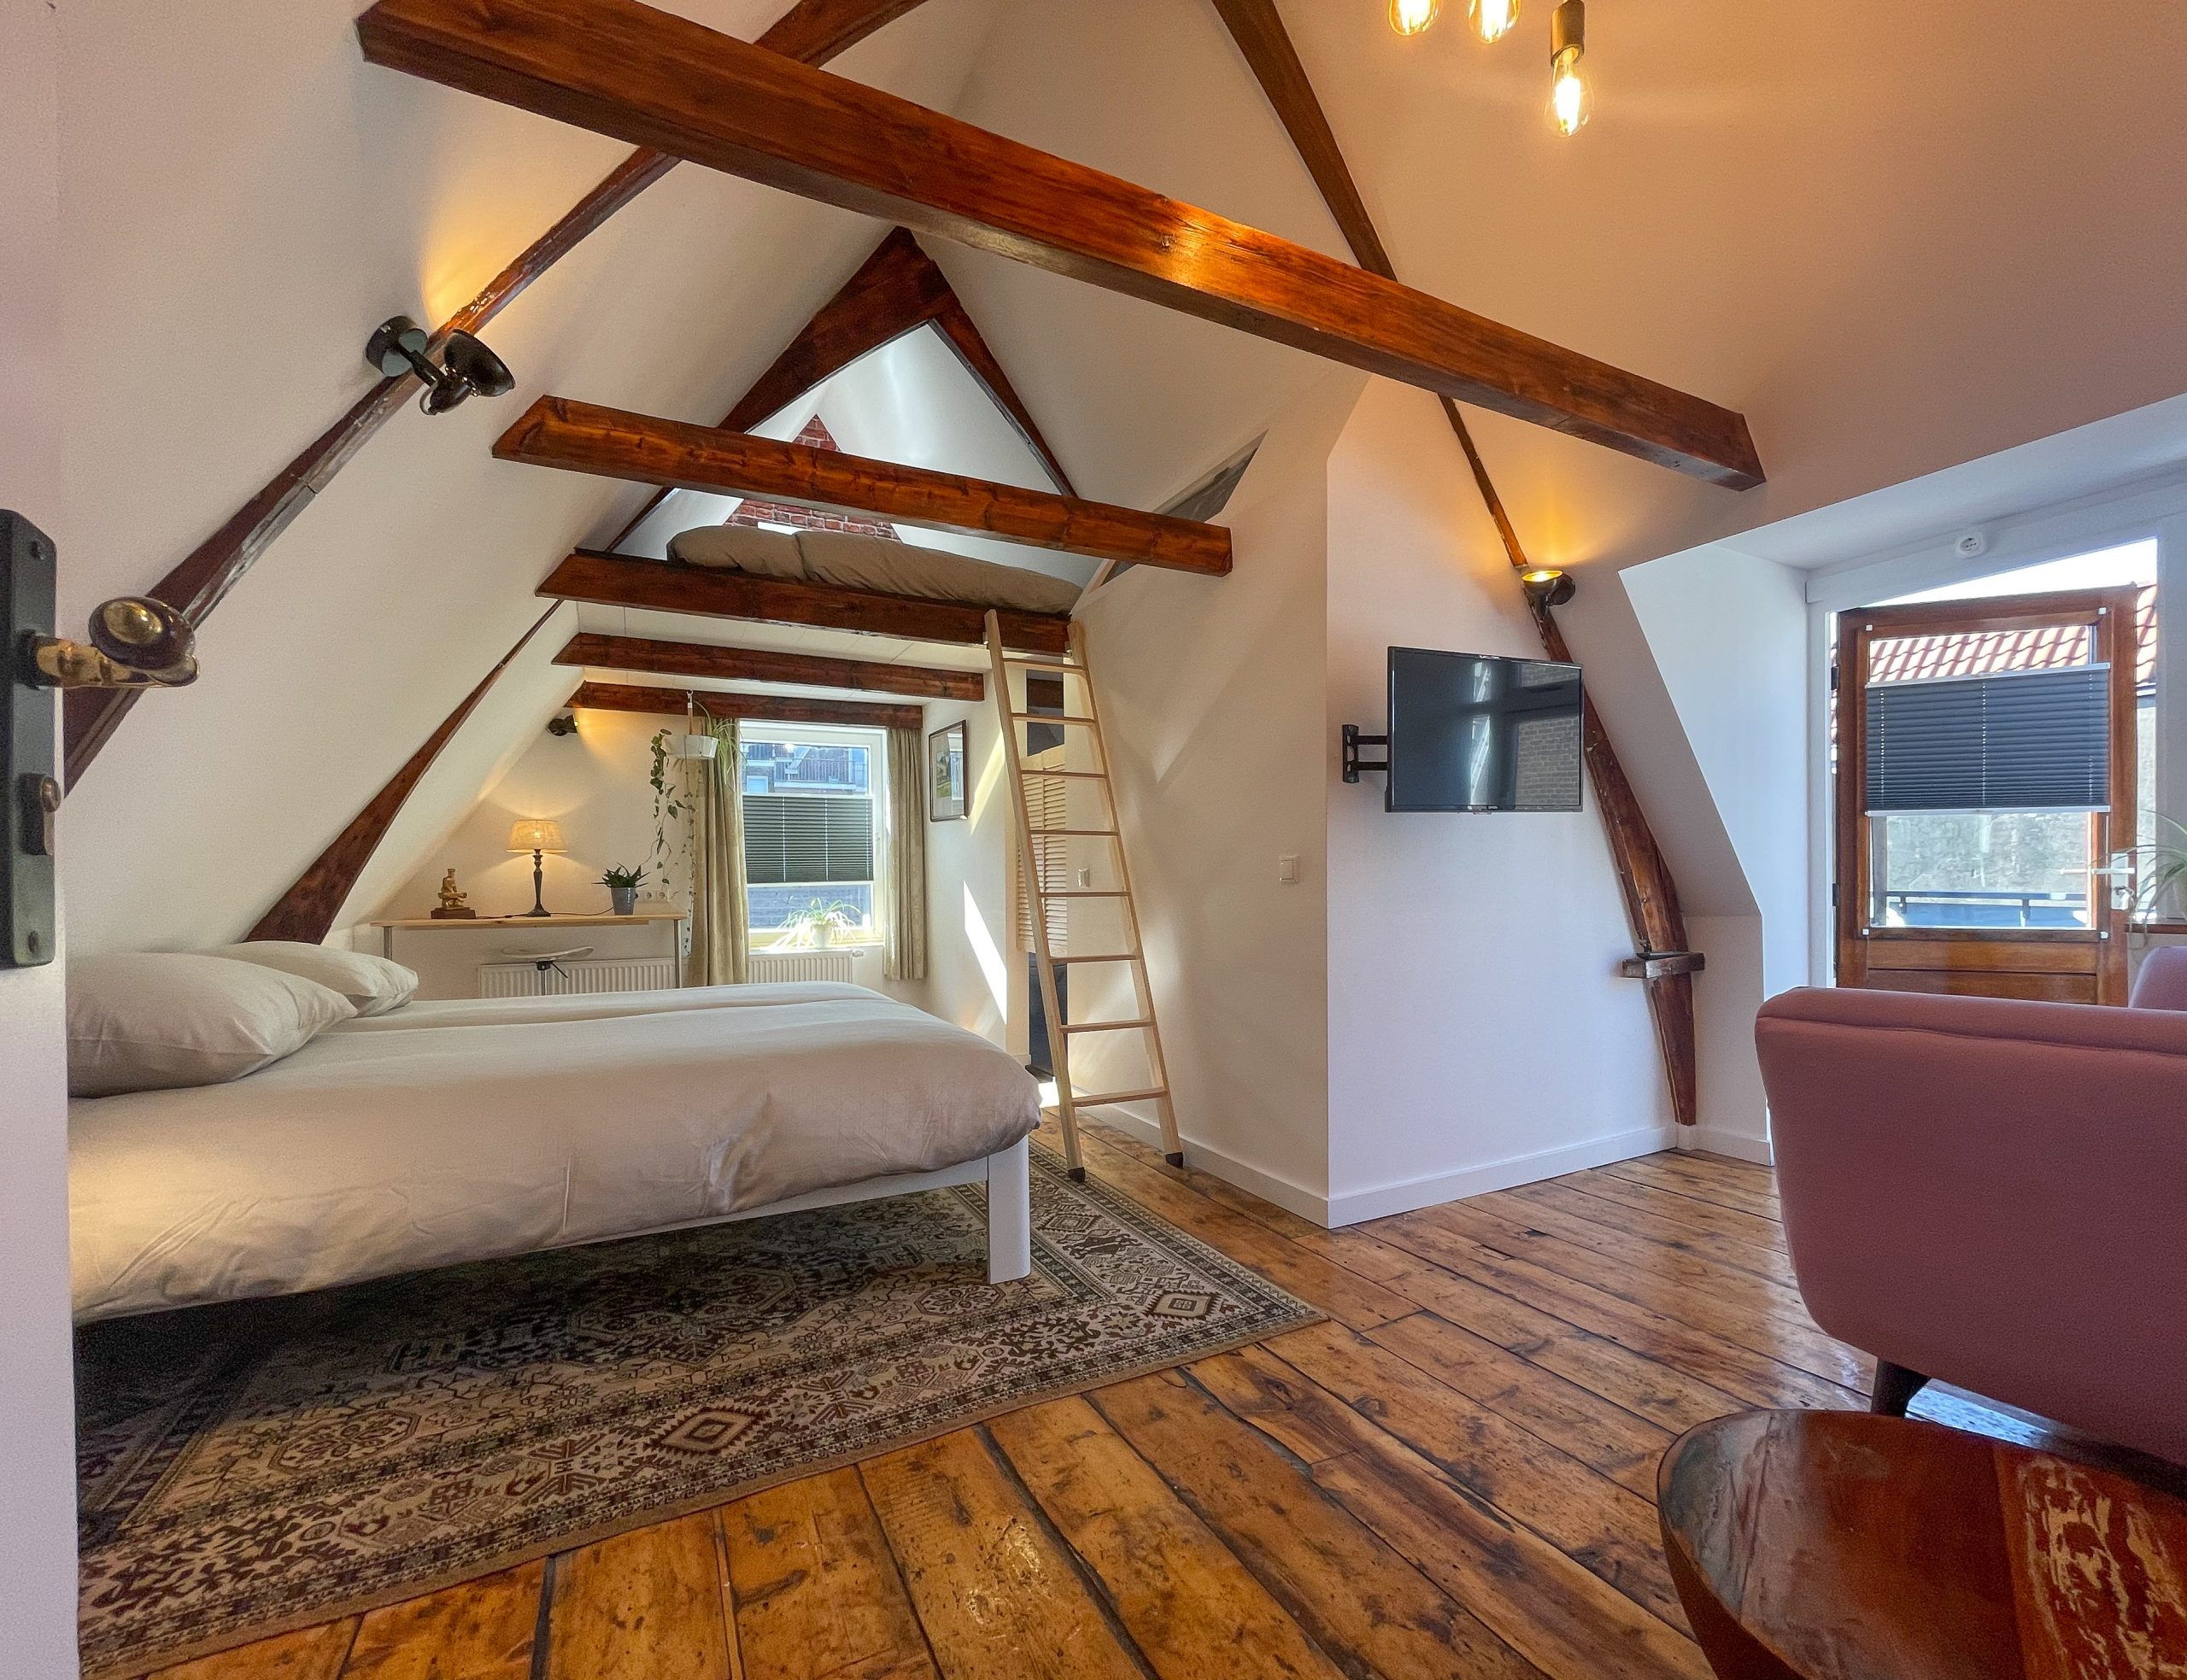 Light room with exposed beams, wooden floor, and two big beds, of which one is accessable via a ladder. There is a sofa and TV in the background as well as access to the roof terrace